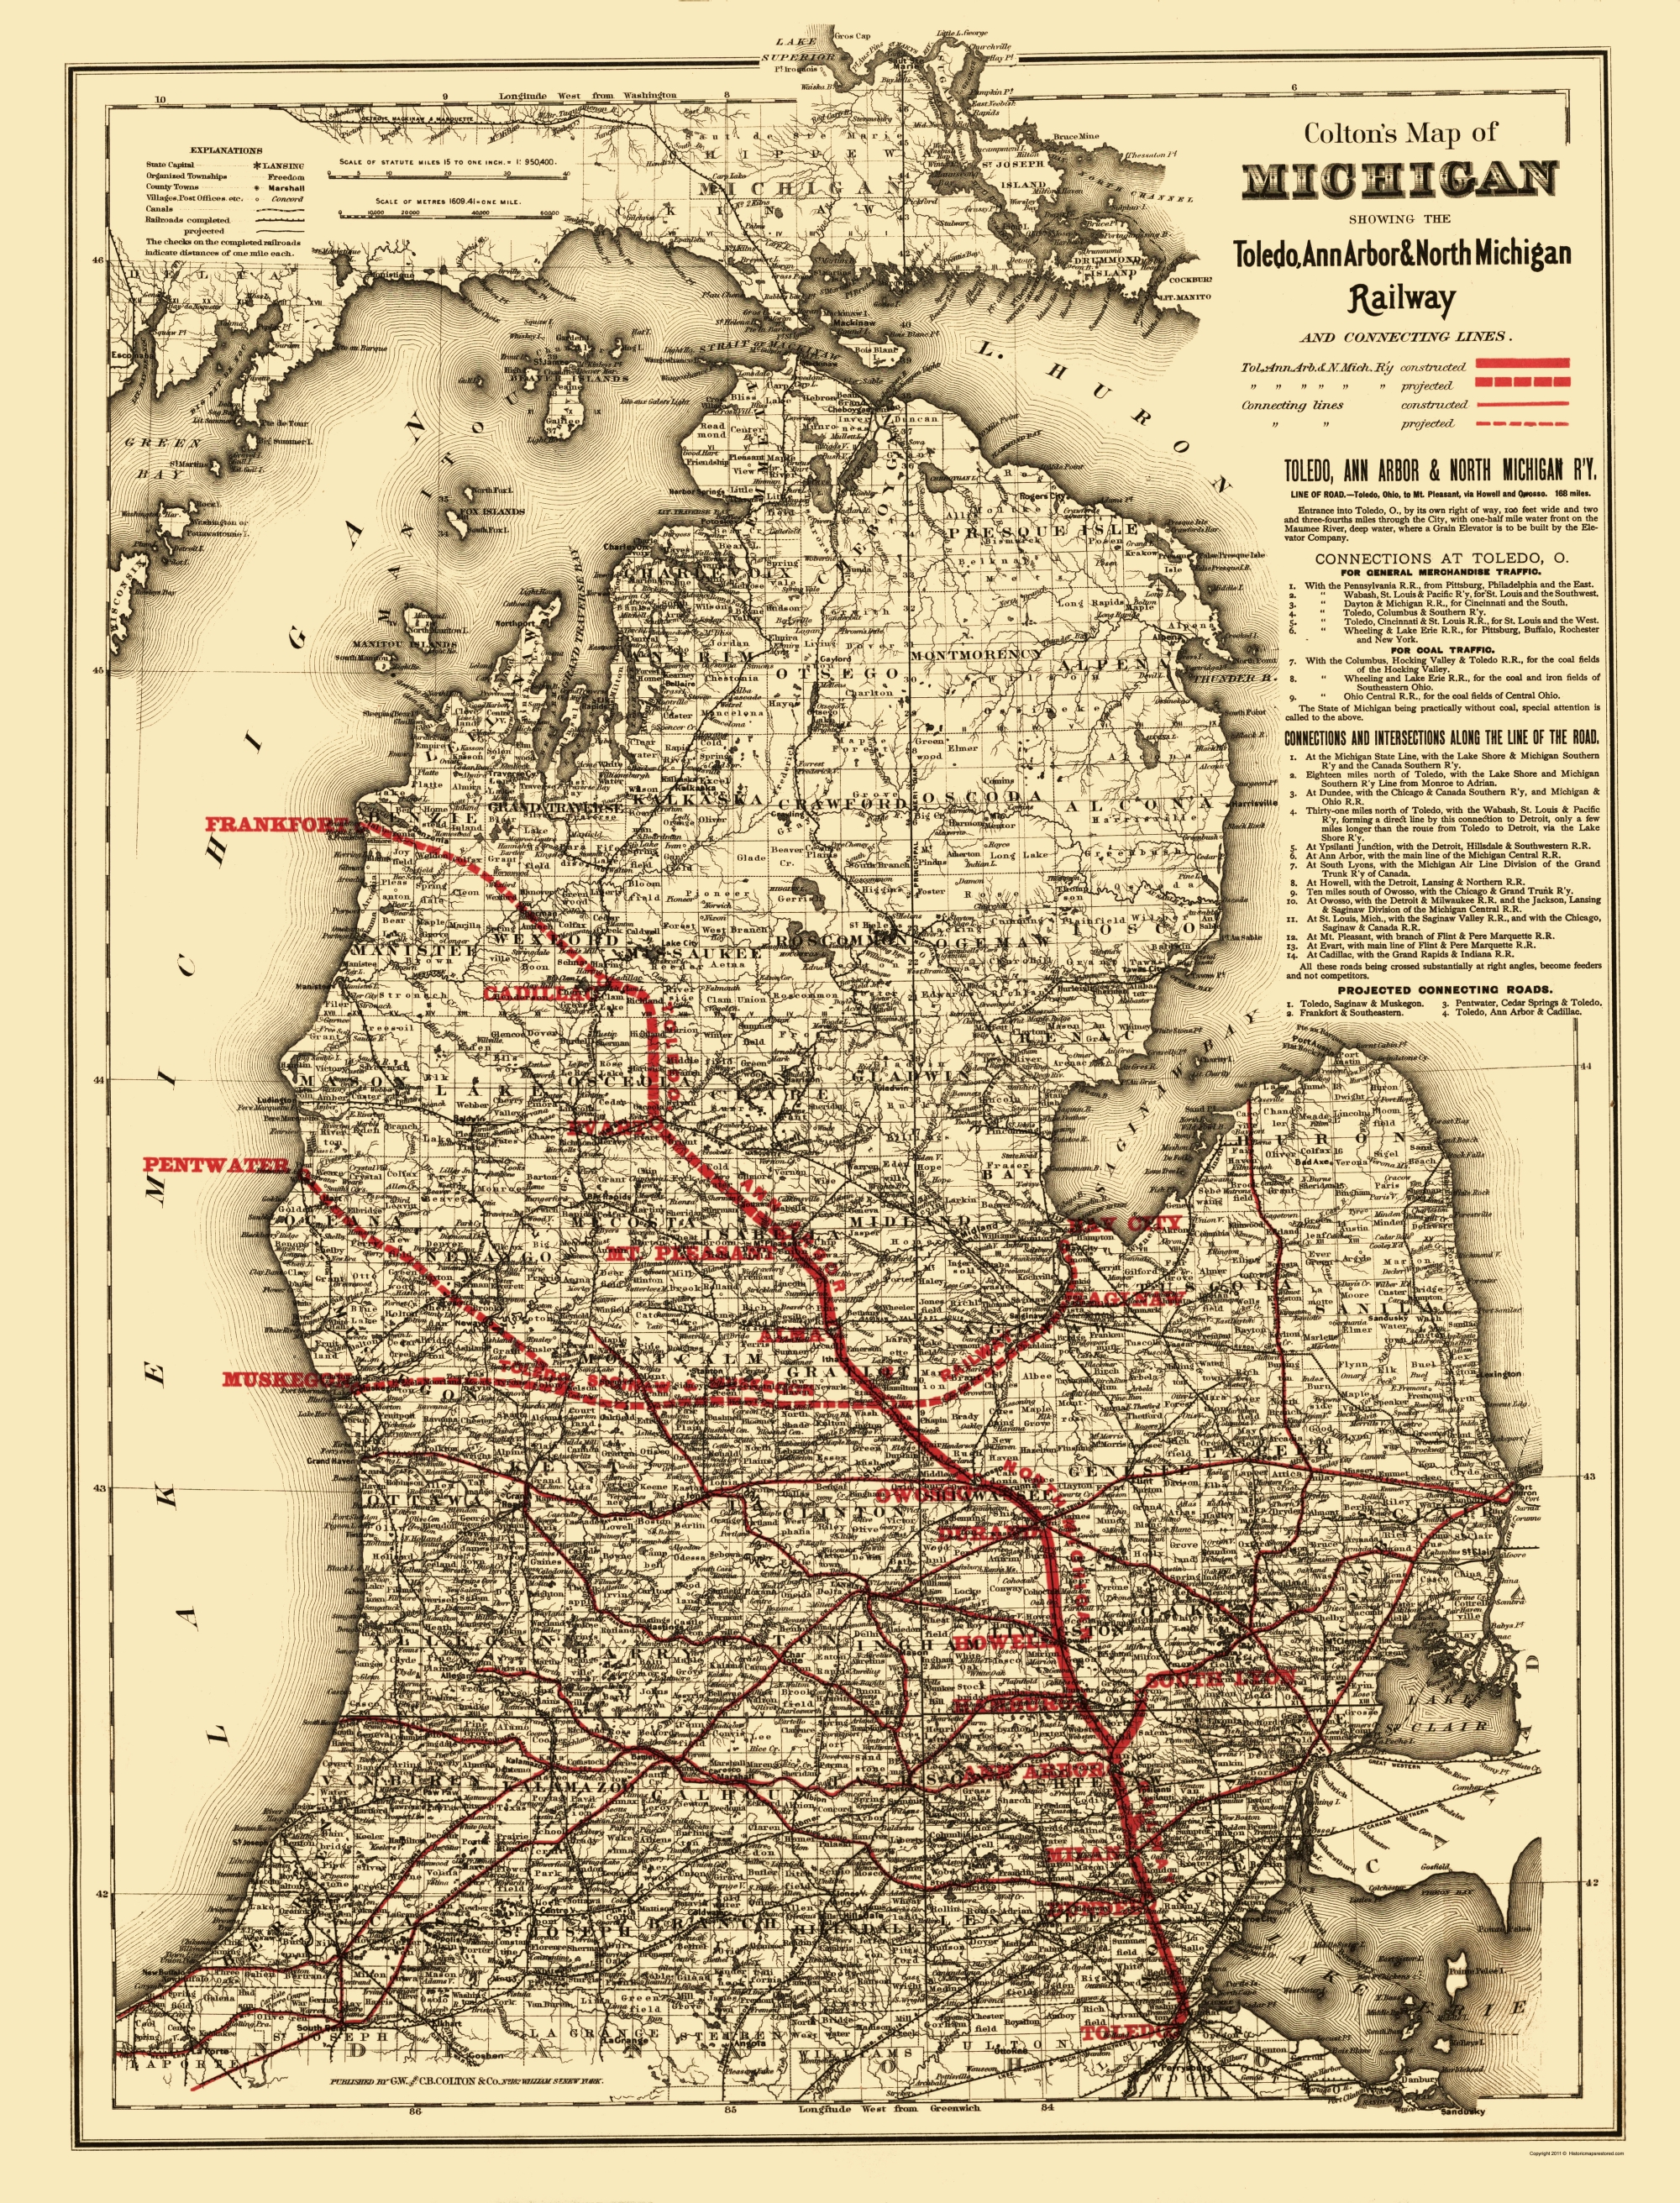 Railroad Map Toledo Ann Arbor And North Michigan 1886